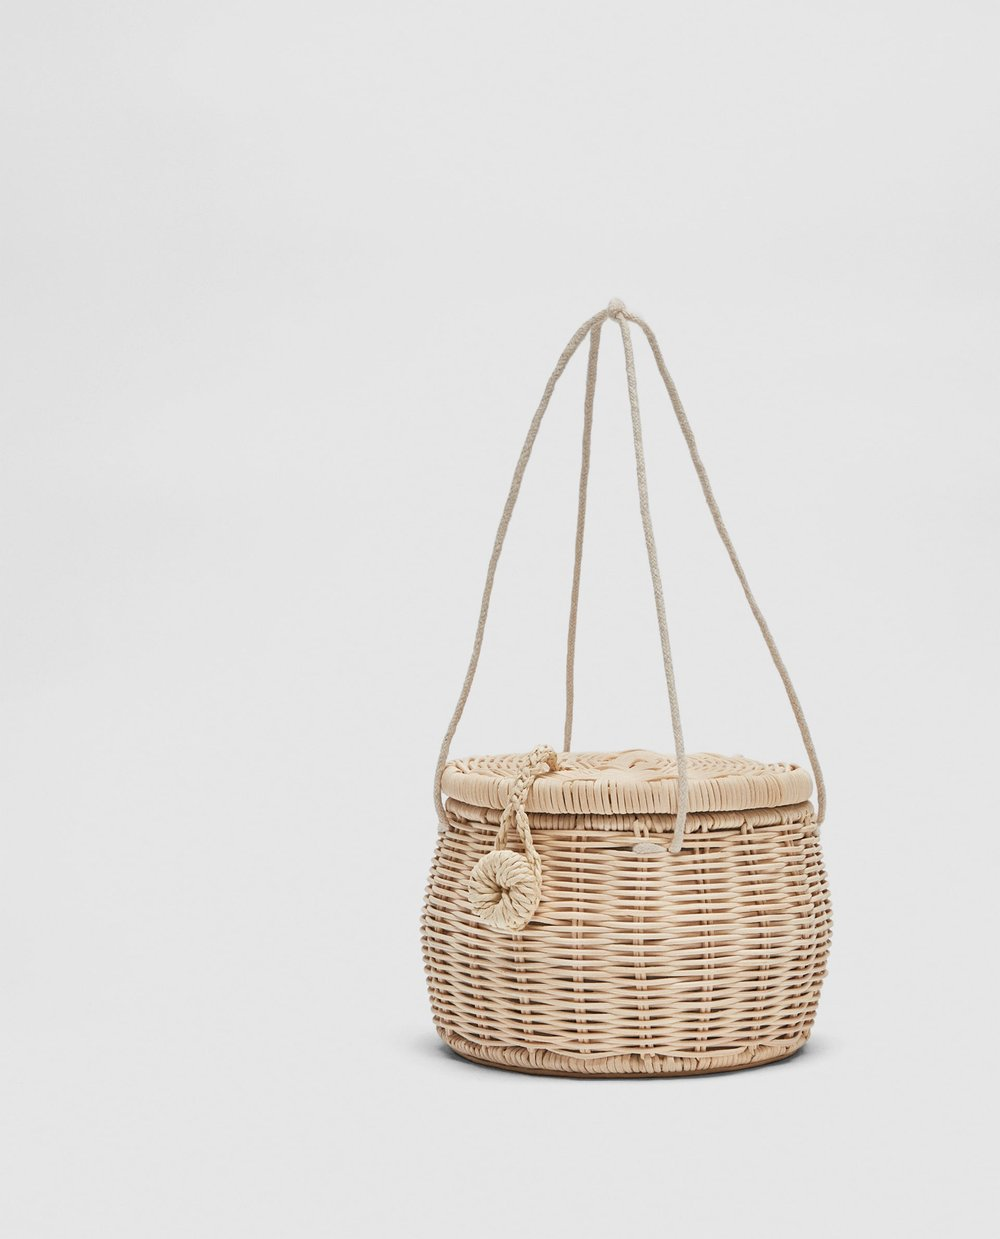 THE PICNIC BASKET BAG    the cutest trend for 2017! This super adorable bag will sure be a conversation piece. a cute picnic basket style will create a show stopping statement!